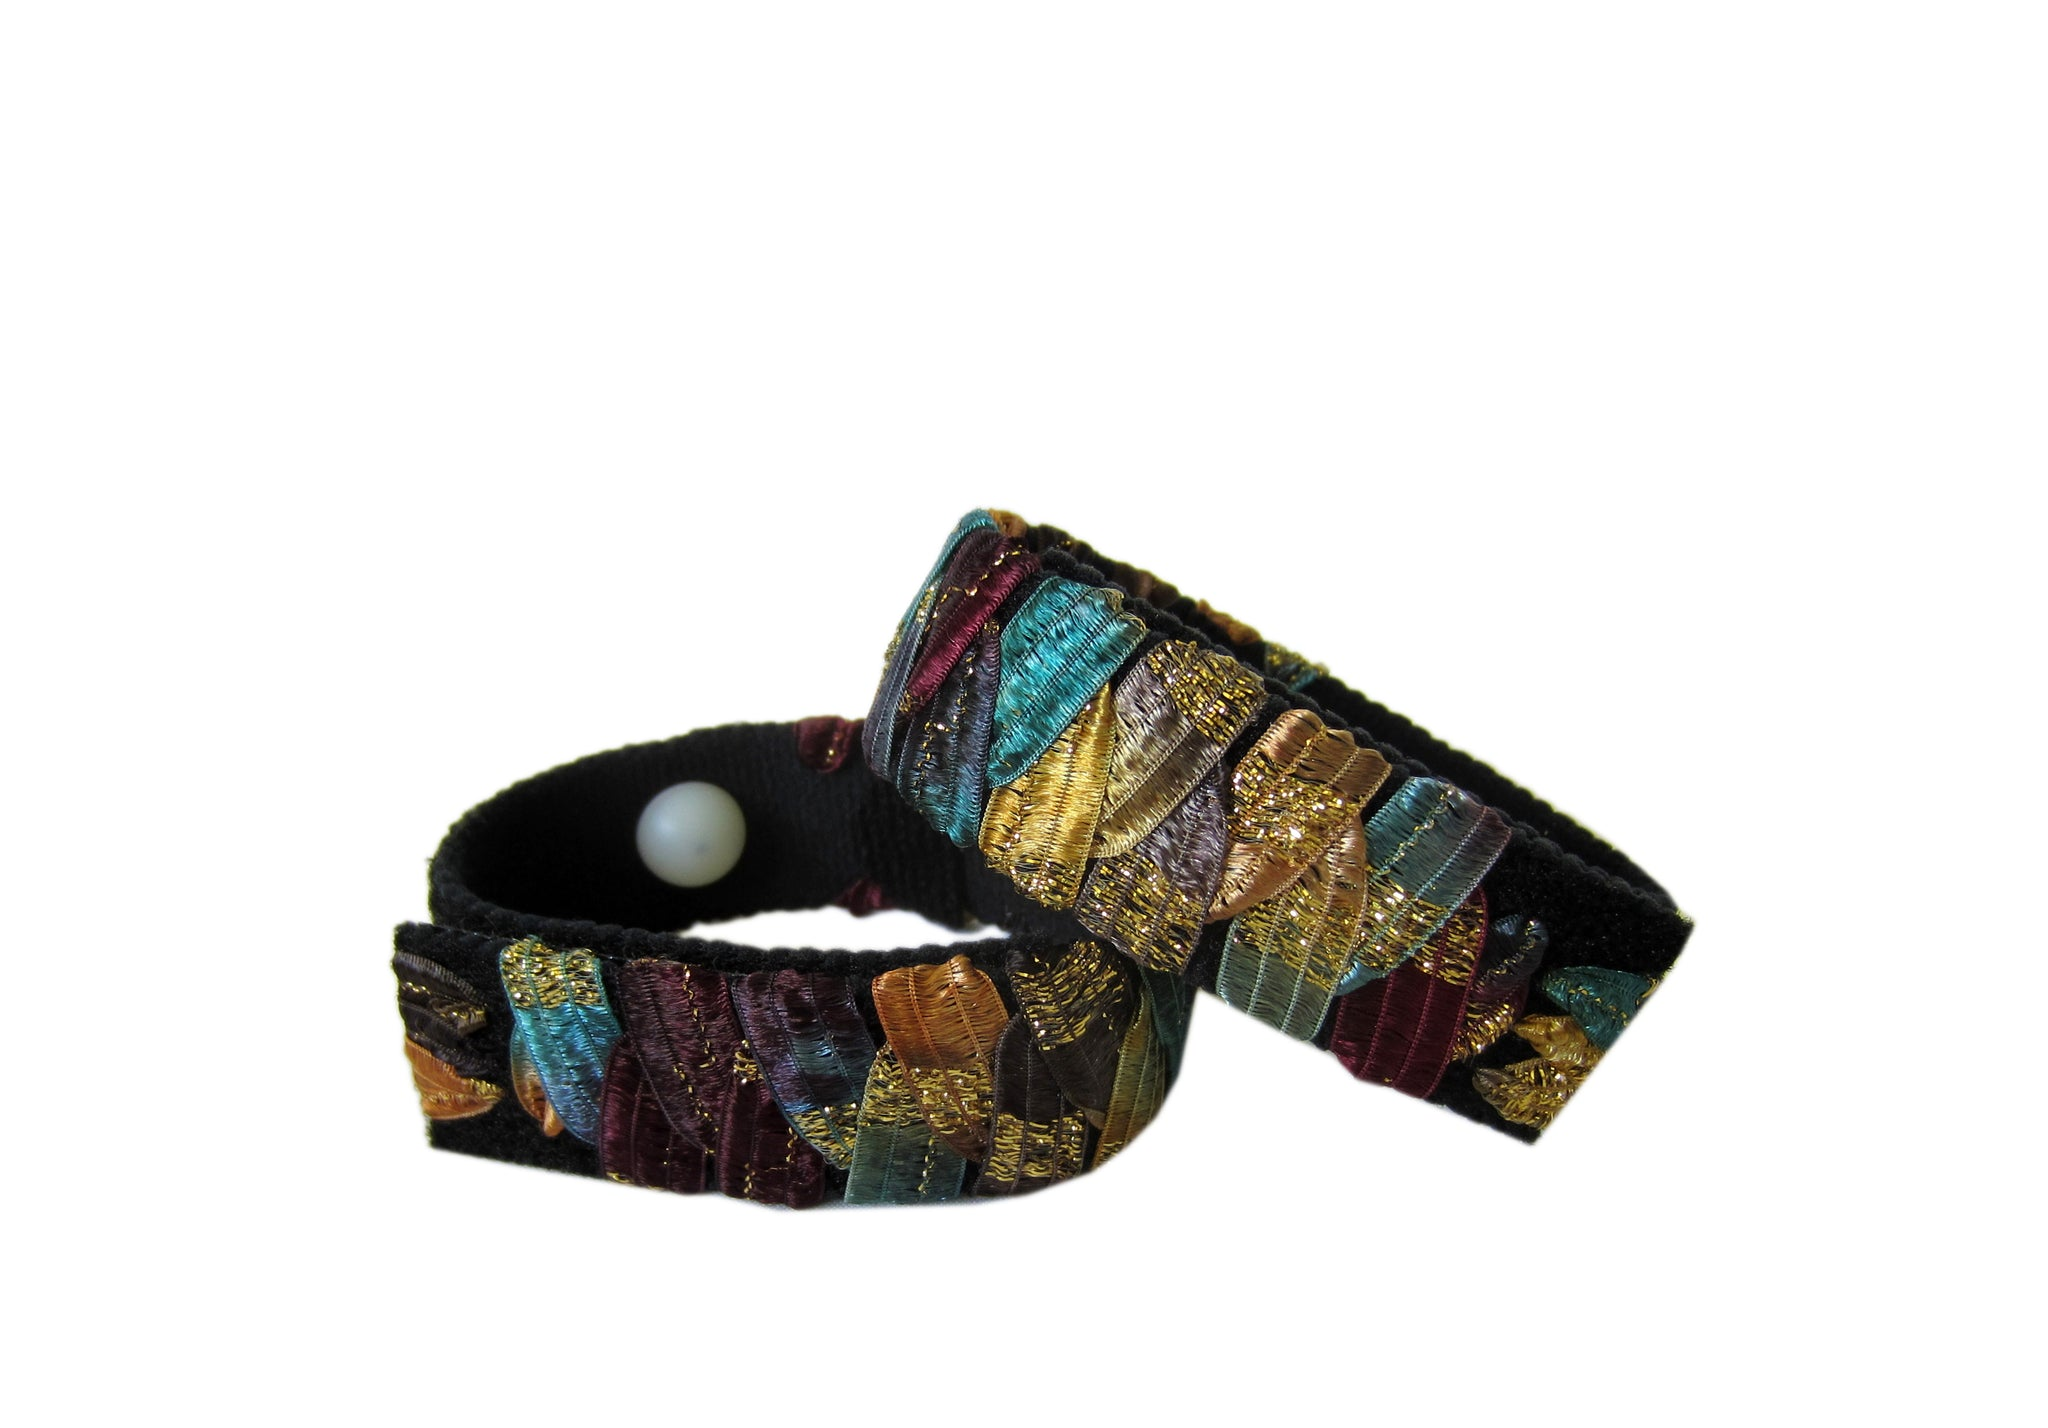 Anti-Nausea/Motion Sickness Bracelets (pair) Timber Metallic - Acupressure Bracelets